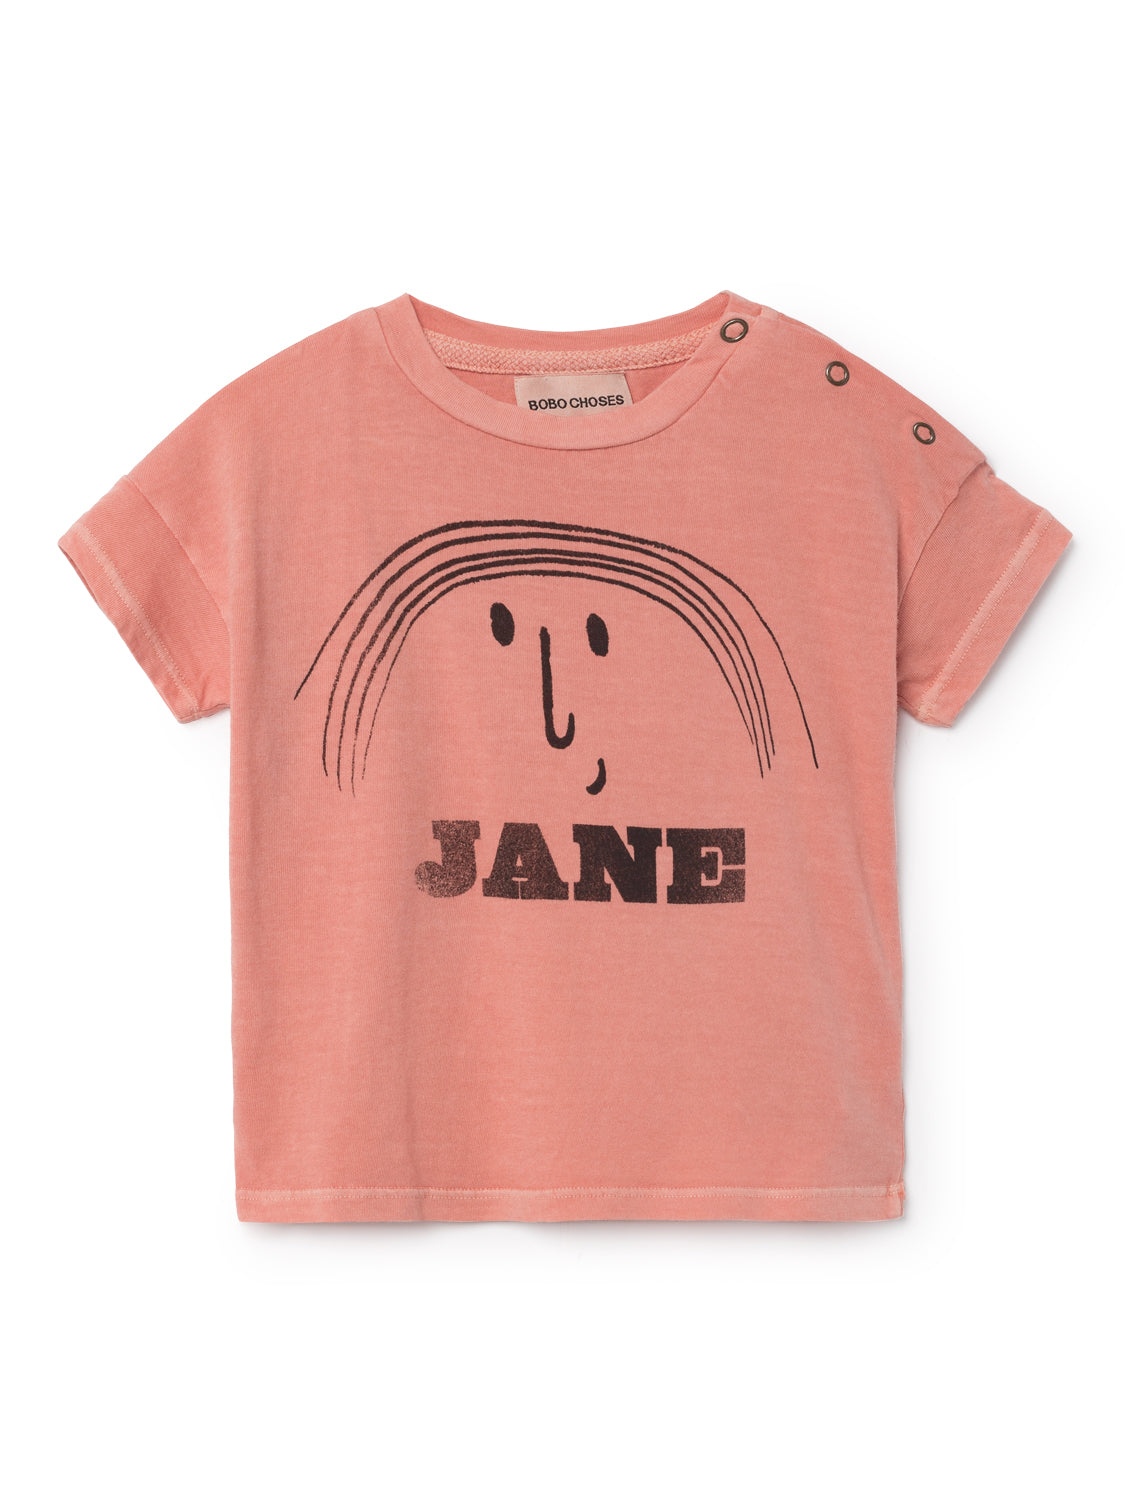 Bobo choses in Ireland organic cotton baby t-shirt Jane Goodall print